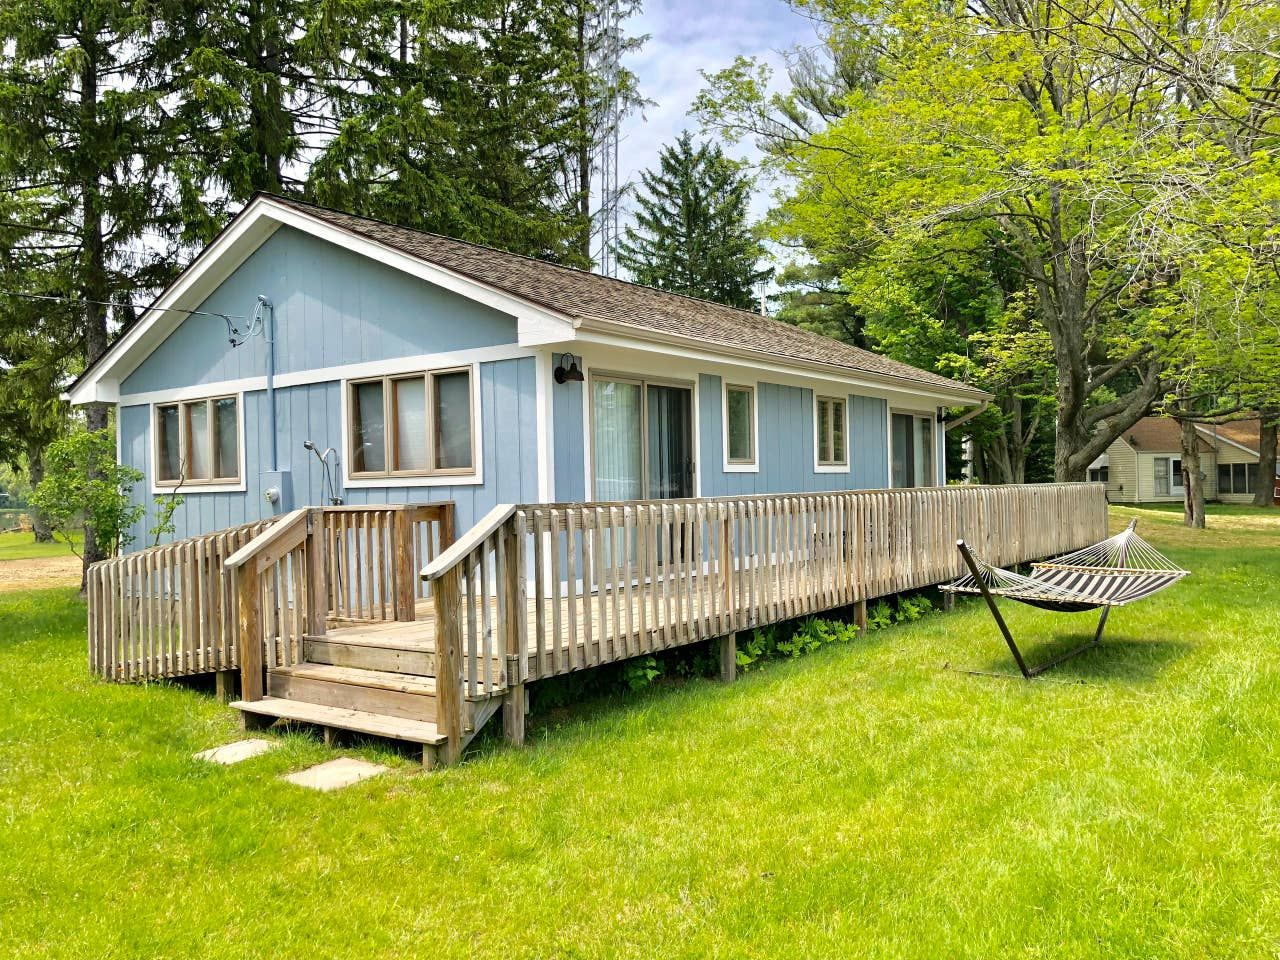 Beautiful Saddle Lake Weekdays Discounted Cottages For Rent In Grand Junction Michigan United States In 2020 Waterfront Homes Cottage Grand Junction